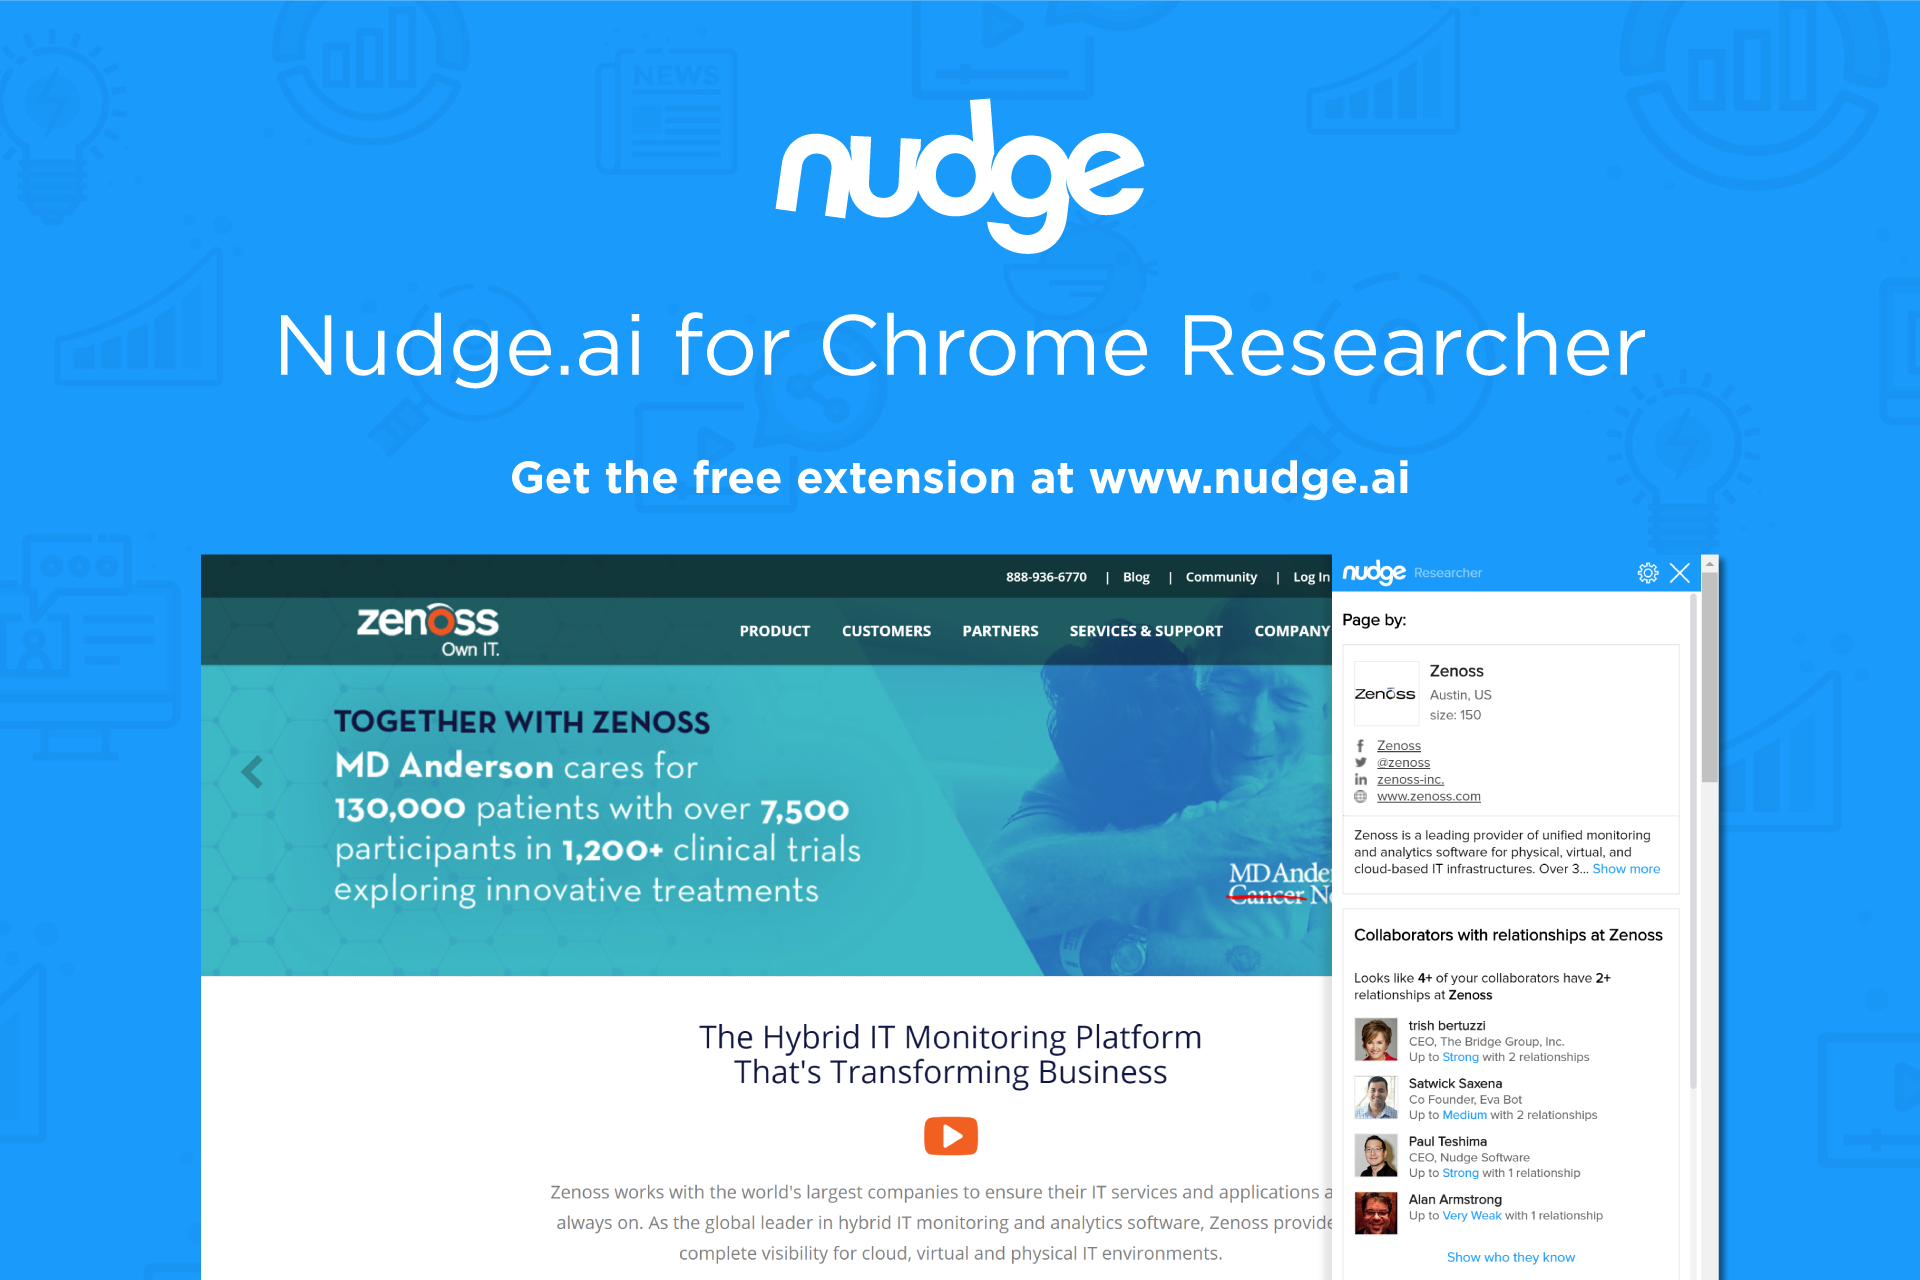 Nudge Demo - Nudge.ai for Chrome Researcher